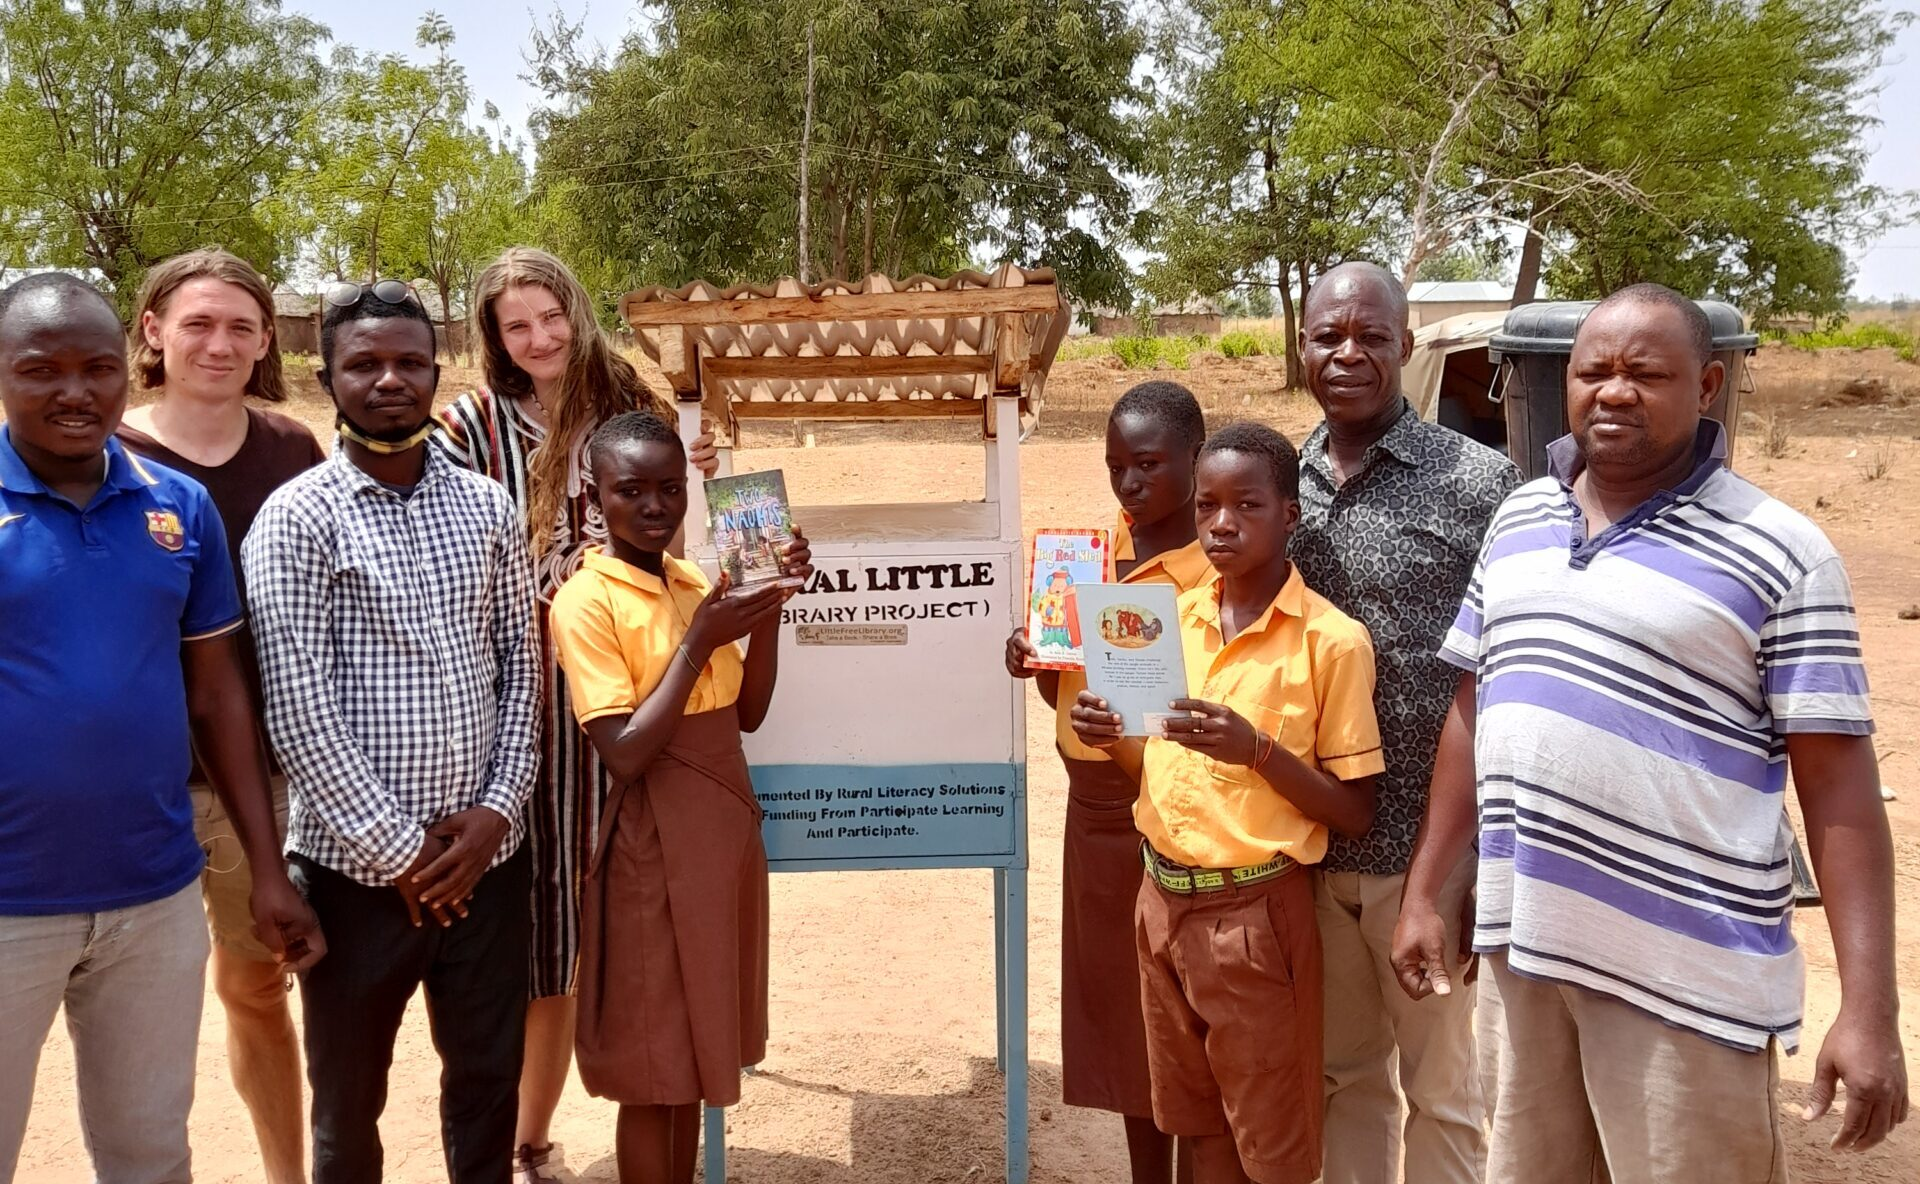 Rural Literacy Solutions